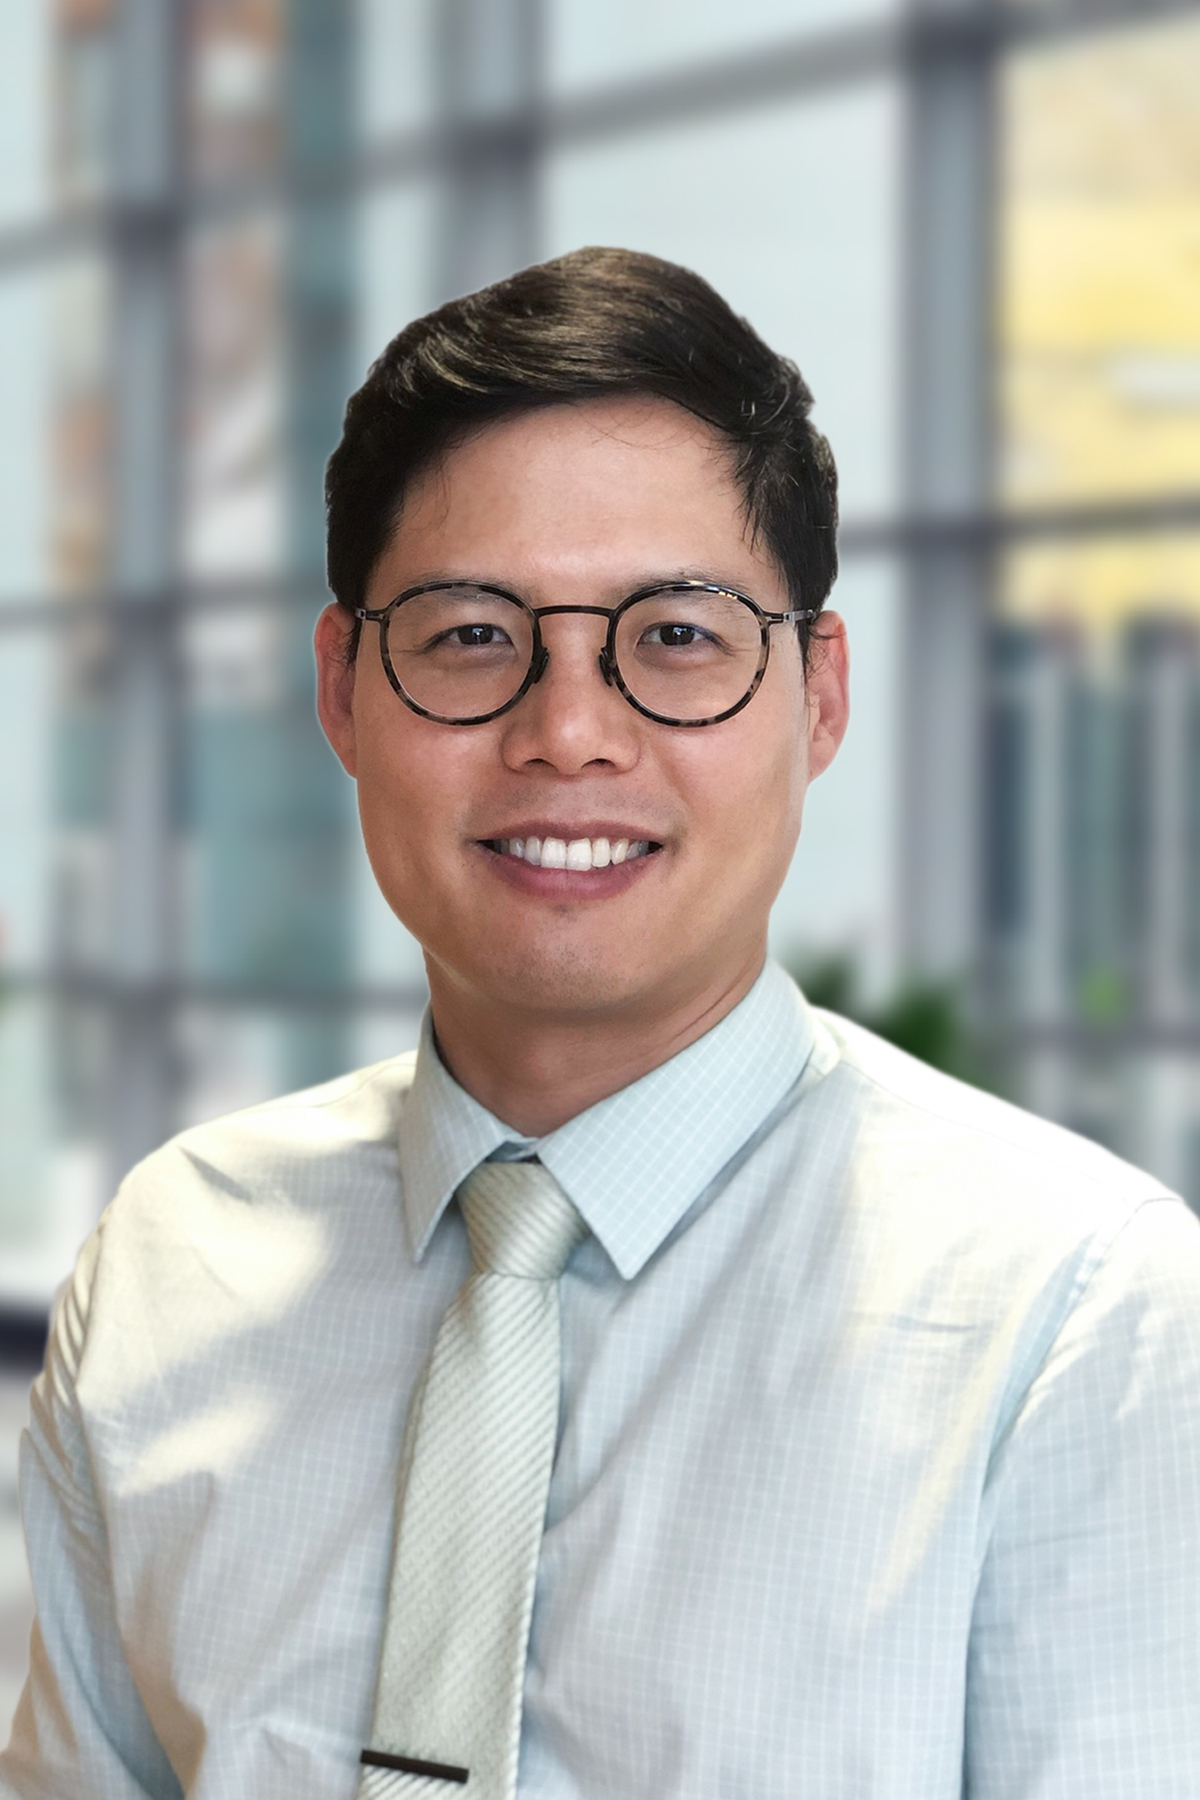 will chung patent agent